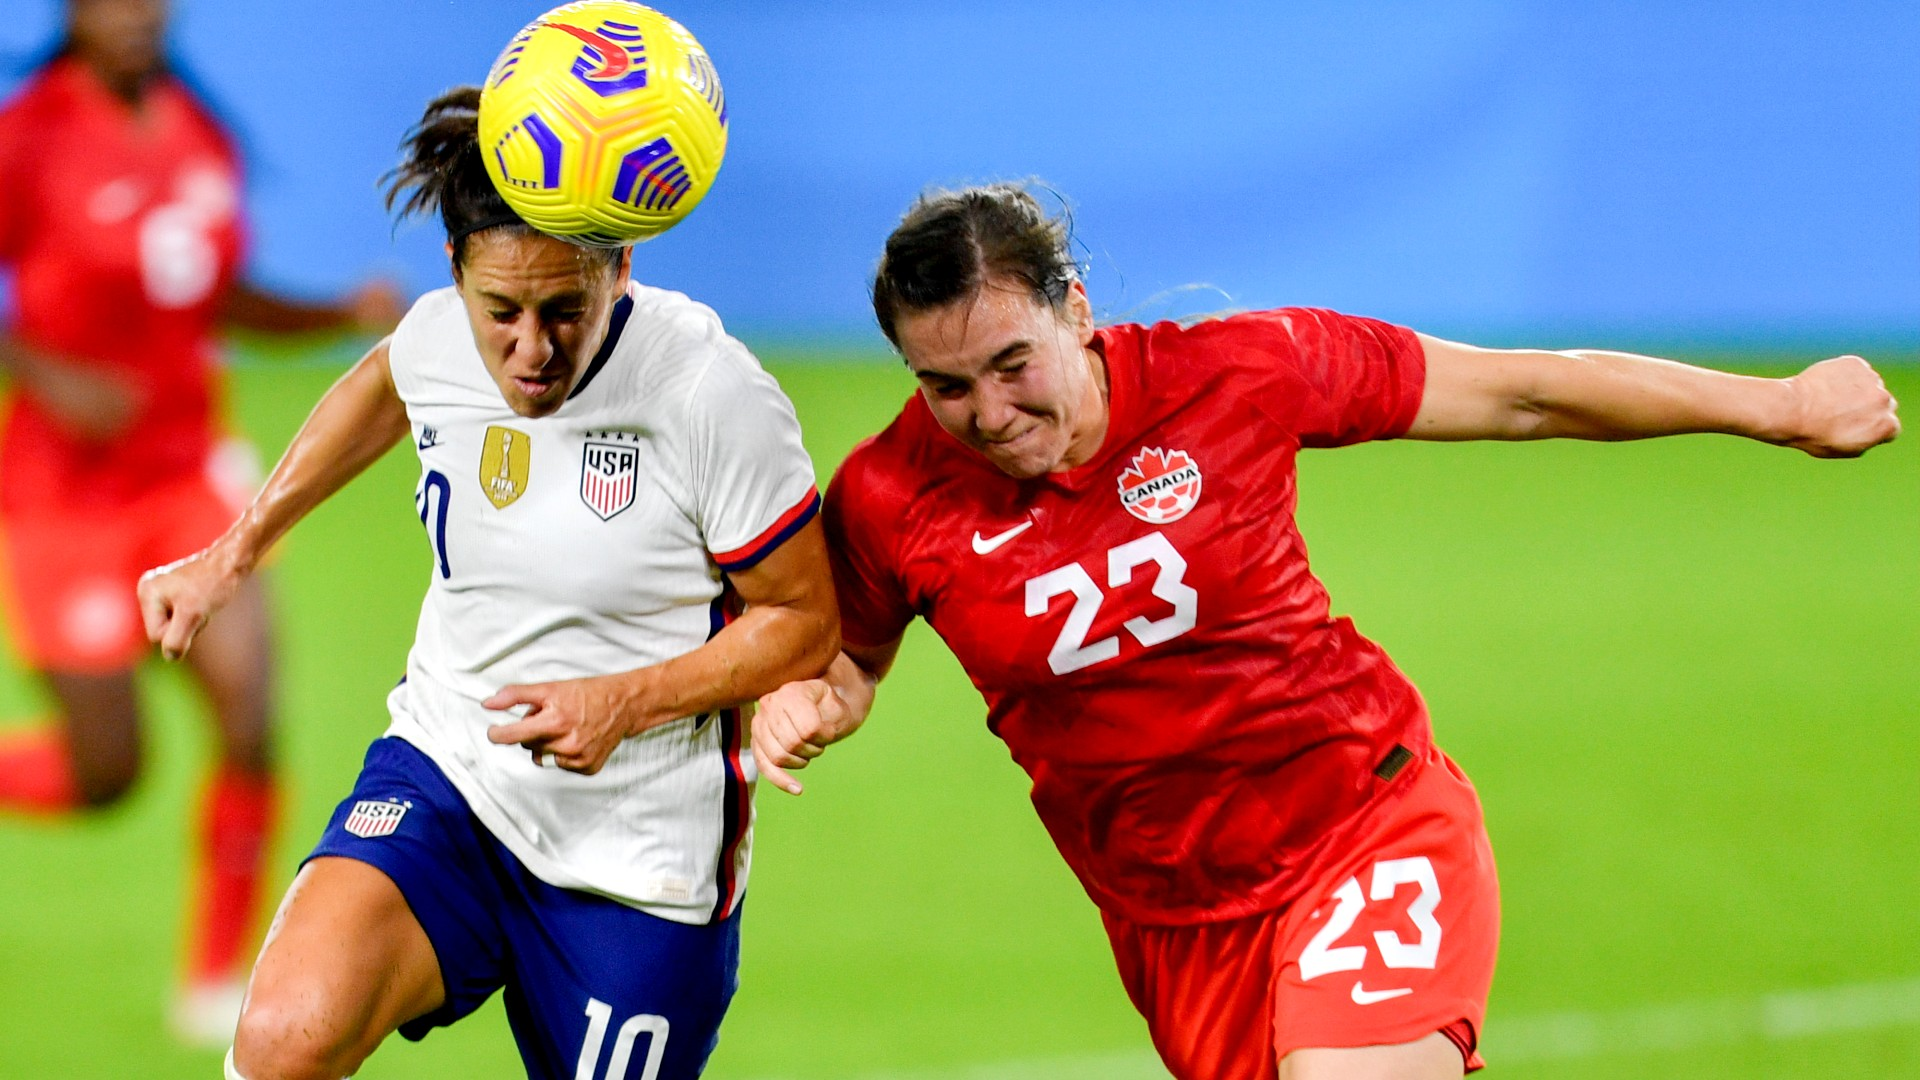 USWNT vs. Canada: Time, channel, TV, stream to watch Olympic women's soccer semifinal